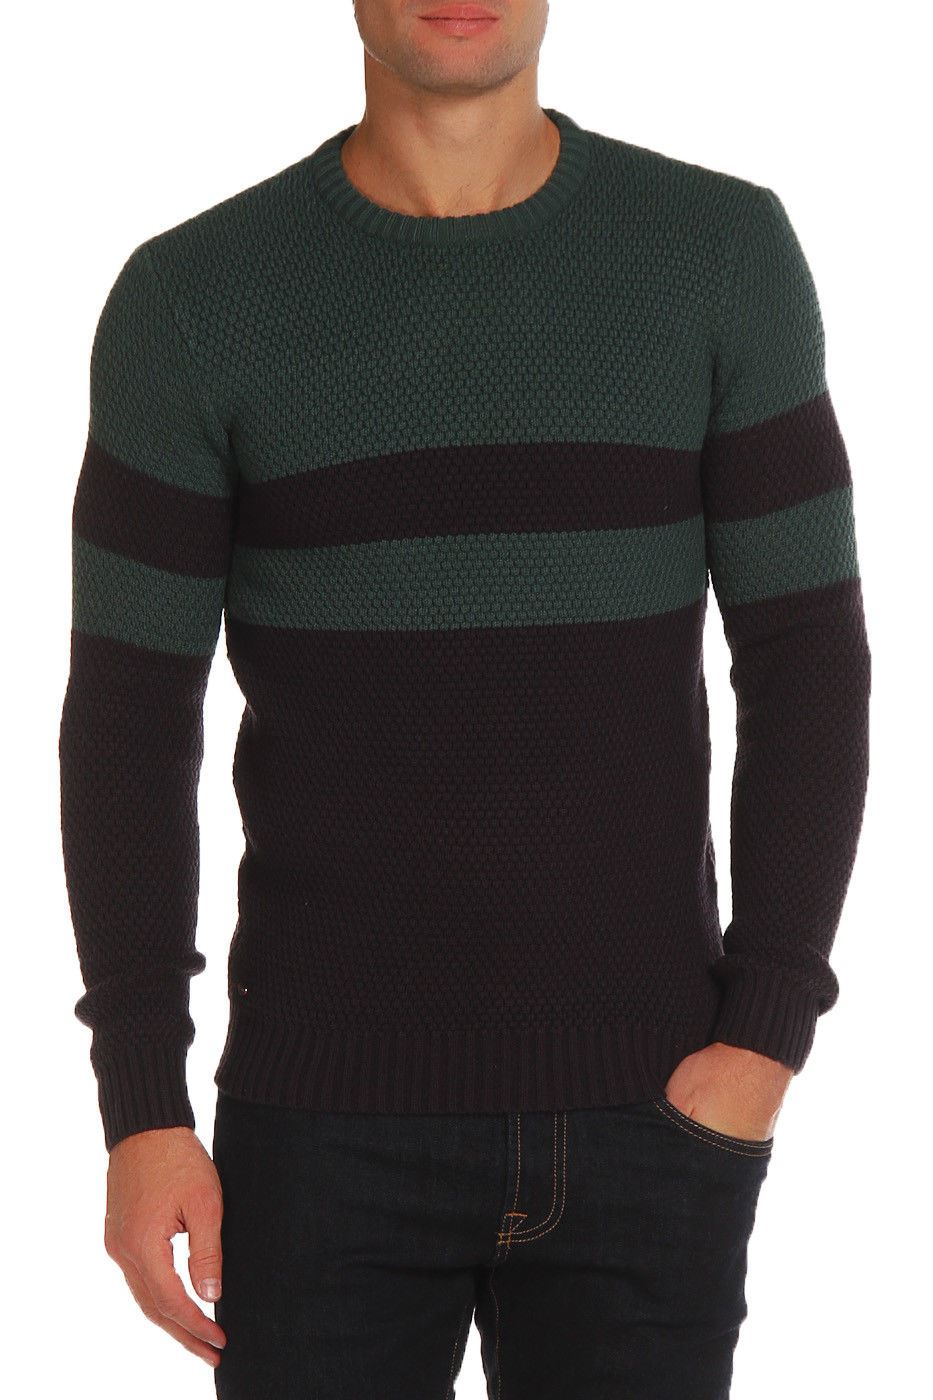 Le-Shark-Designer-Mens-Jumper-Crew-Neck-Wool-Fashion-Knitwear-Sweater thumbnail 9